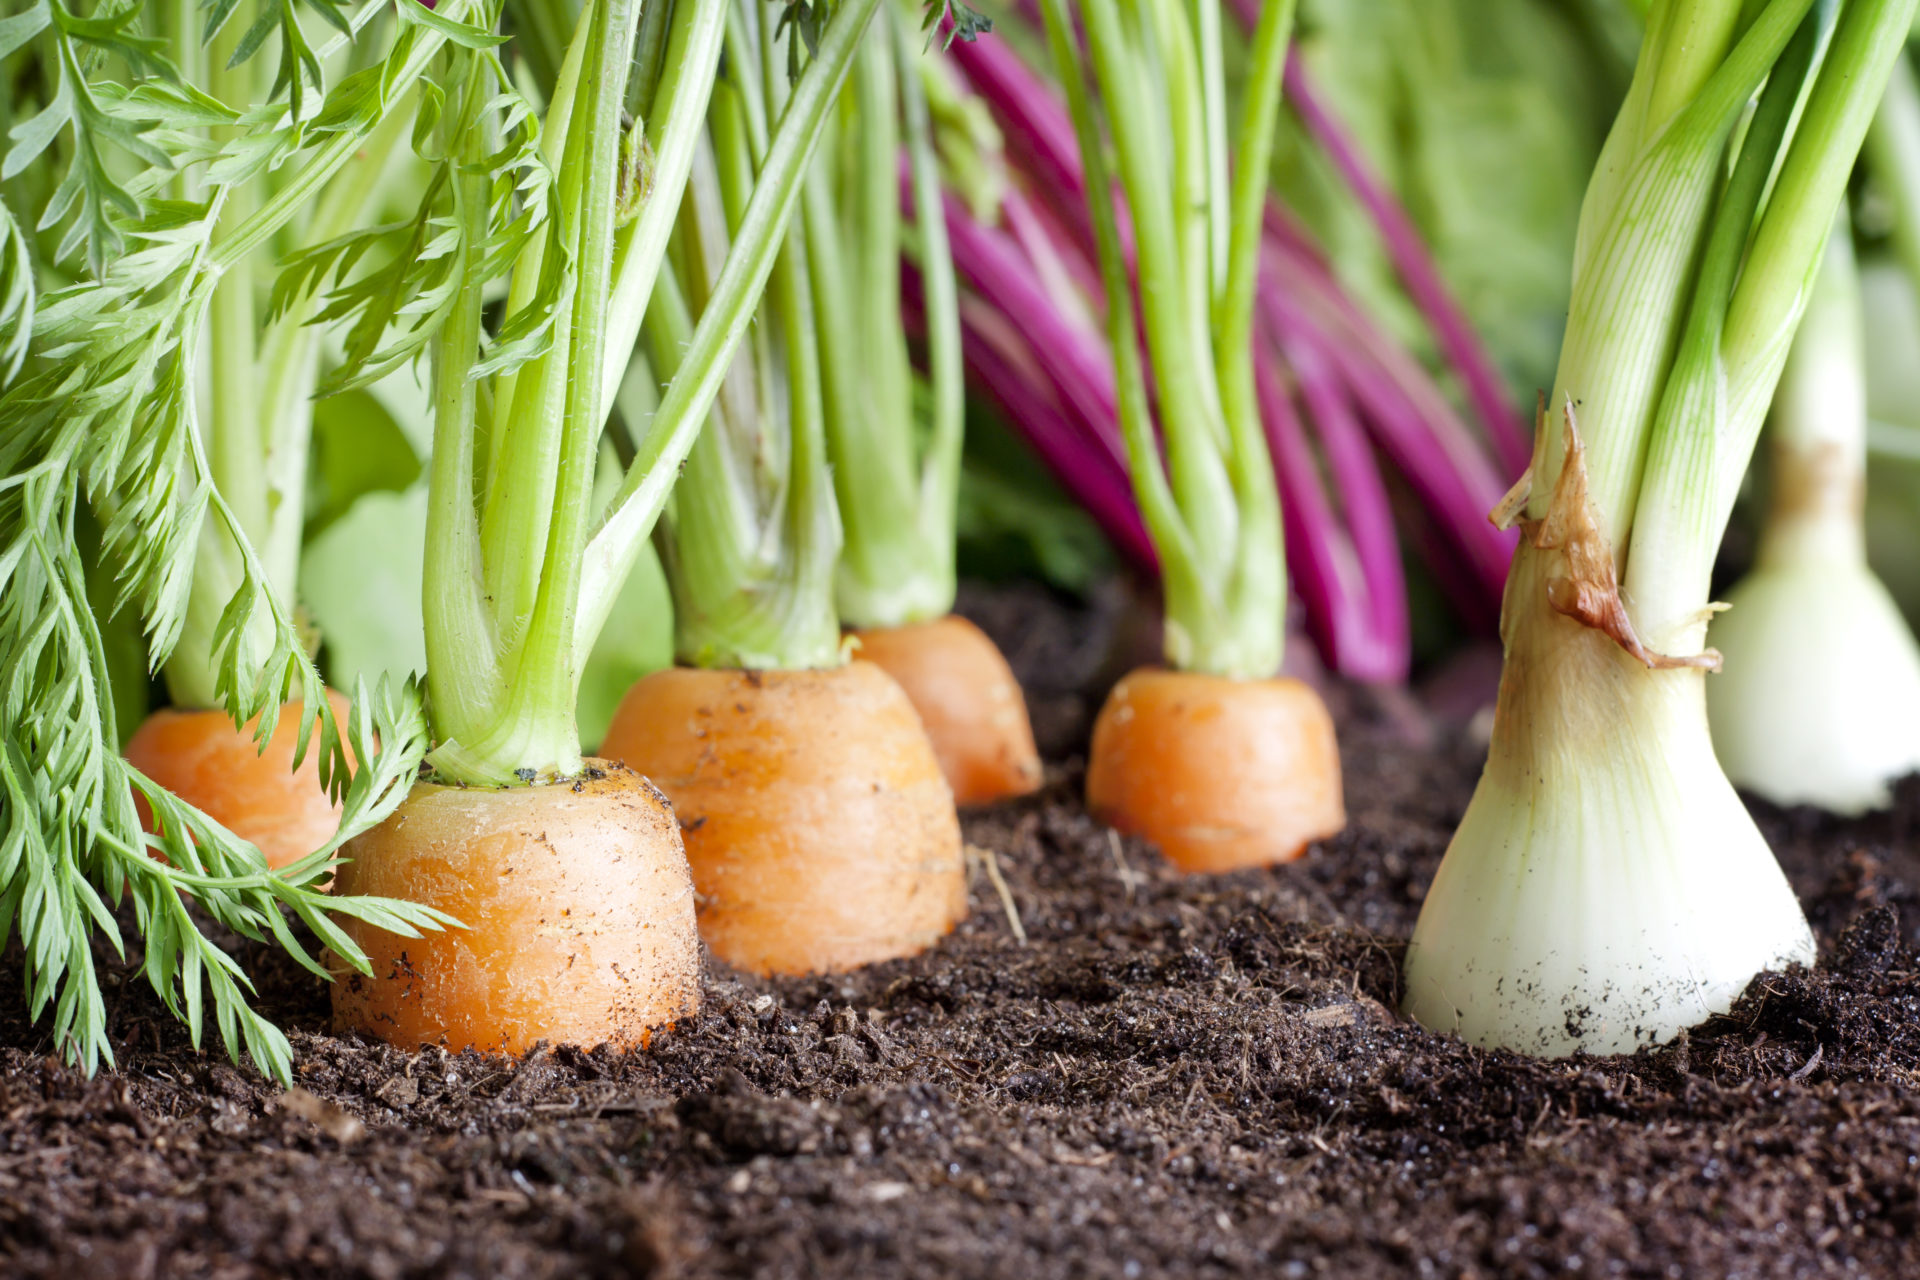 I Heart Veg - picture of carrots and onions growing out of dirt